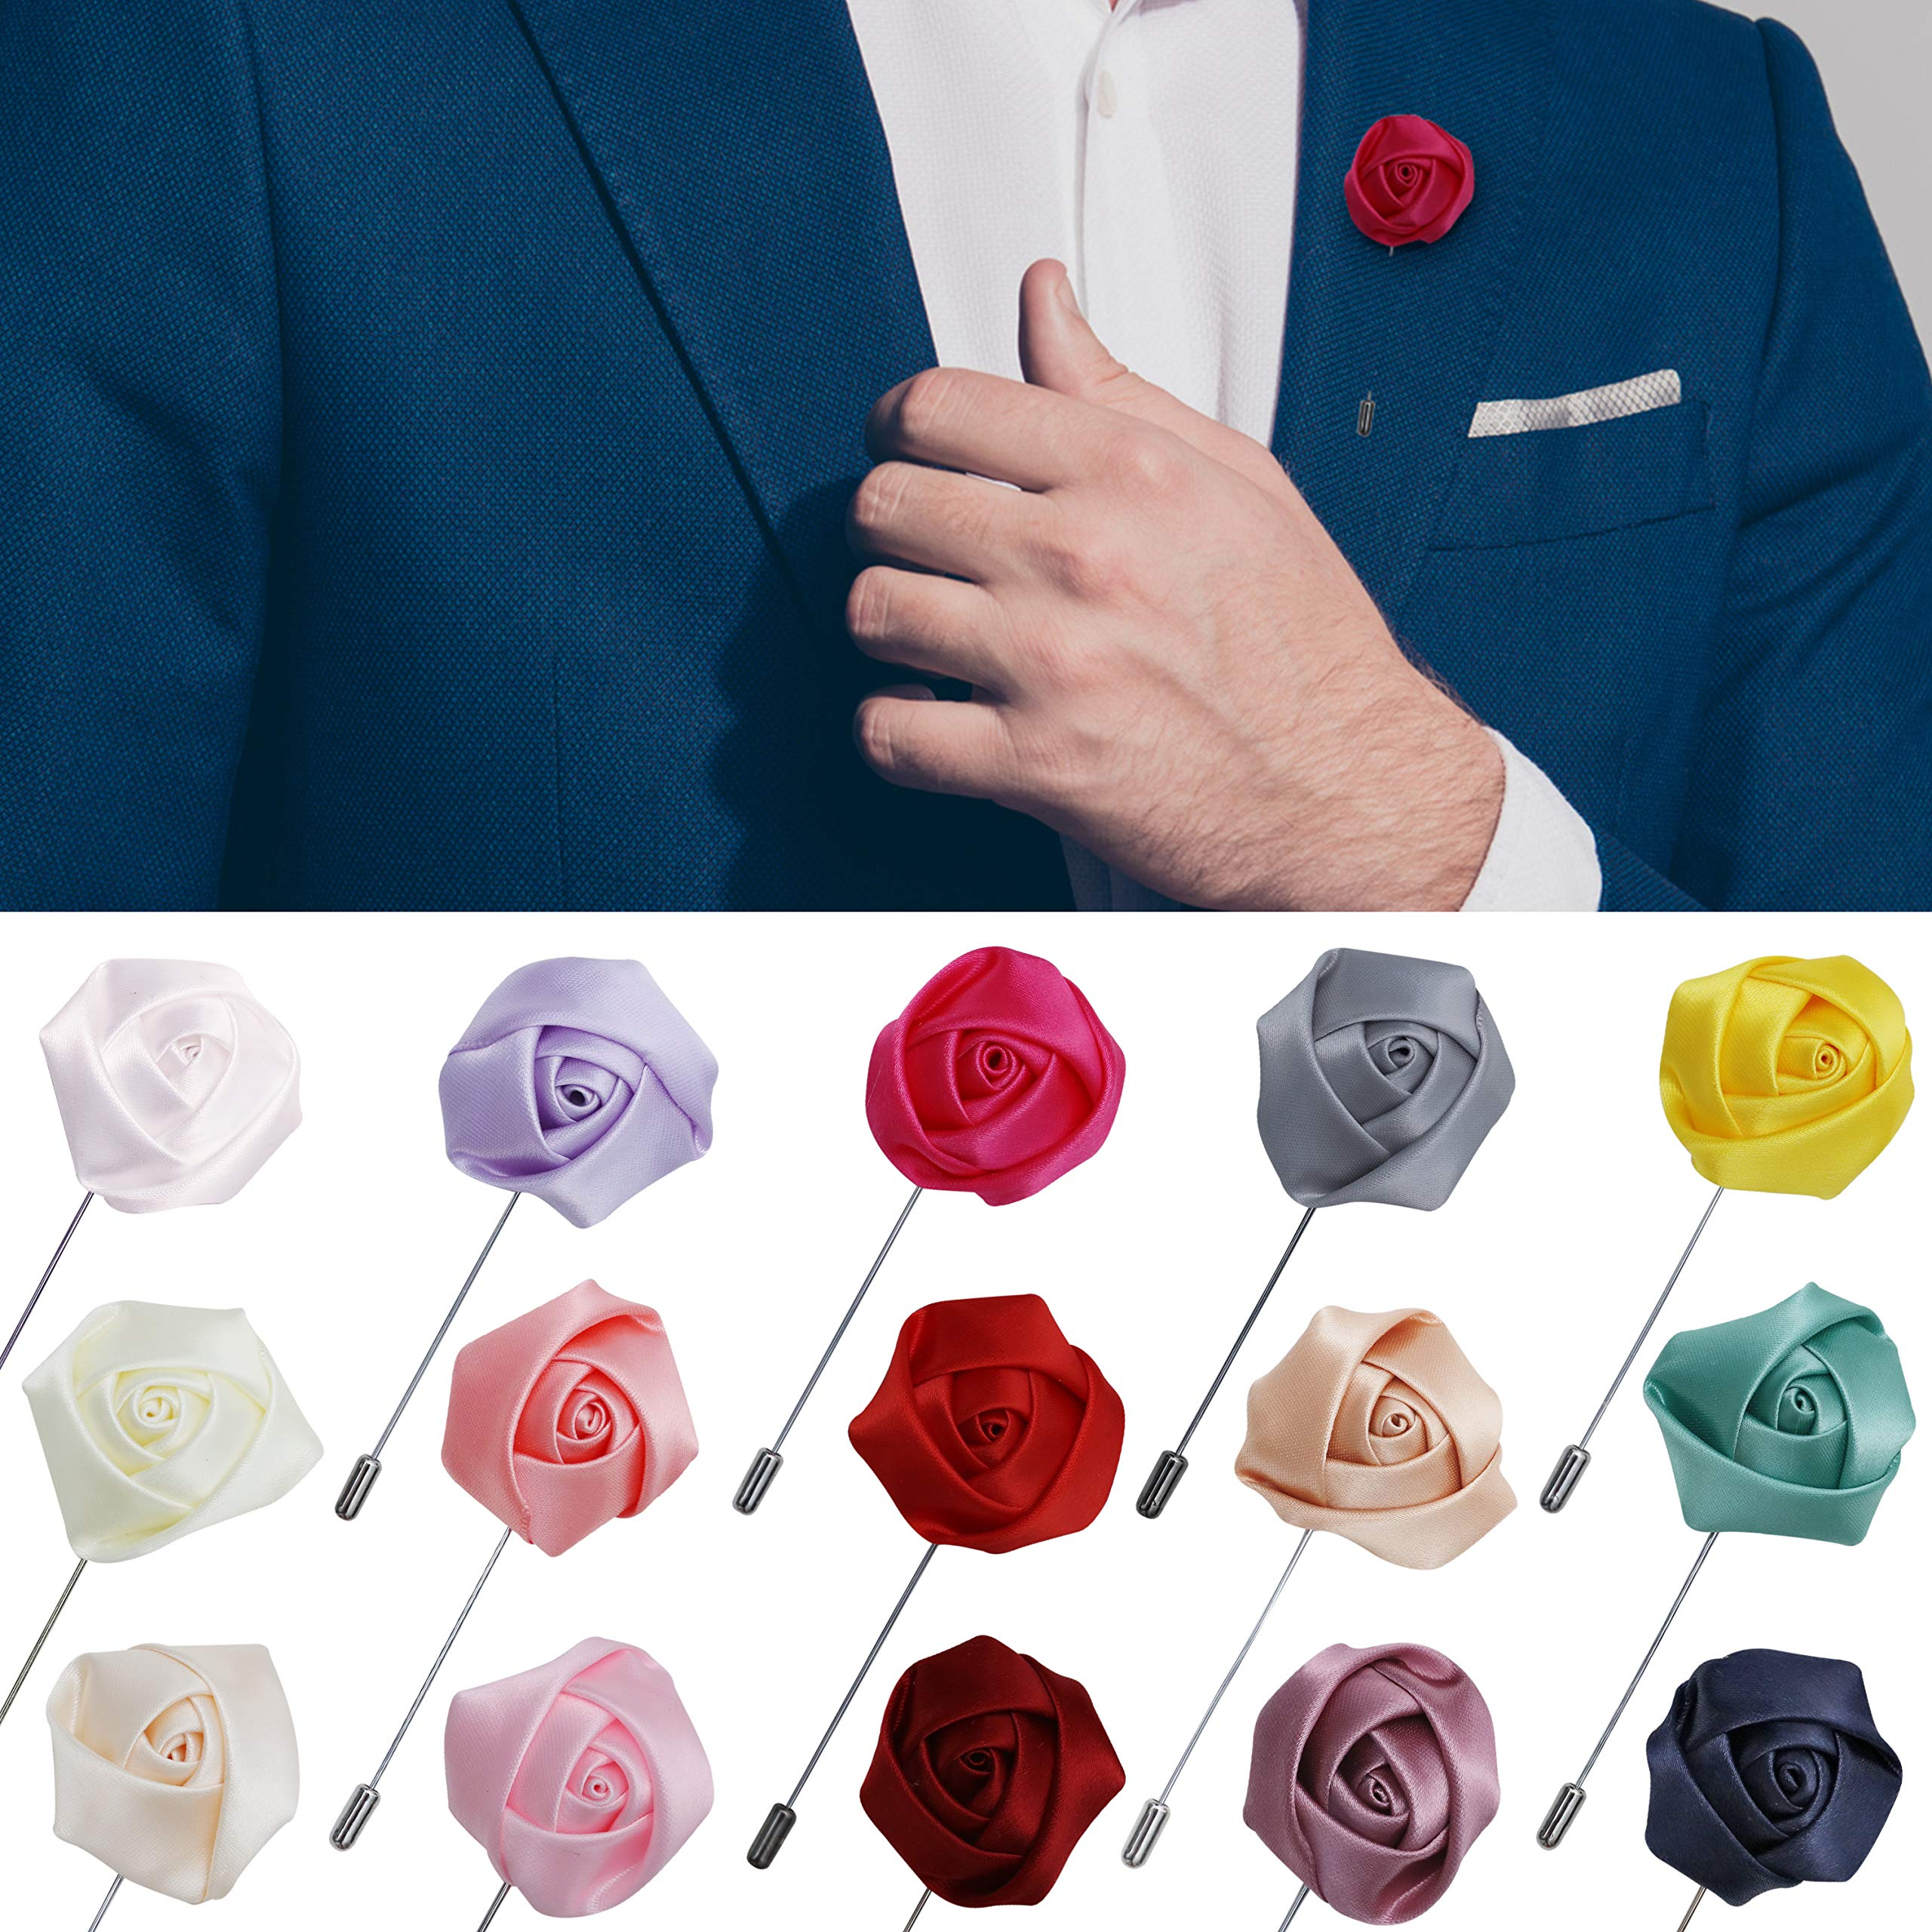 JLIKA Lapel Pins for Men Flower Pin Rose for Wedding Boutonniere Stick Boutineers (Set of 15 PINS) (Assorted Mix)